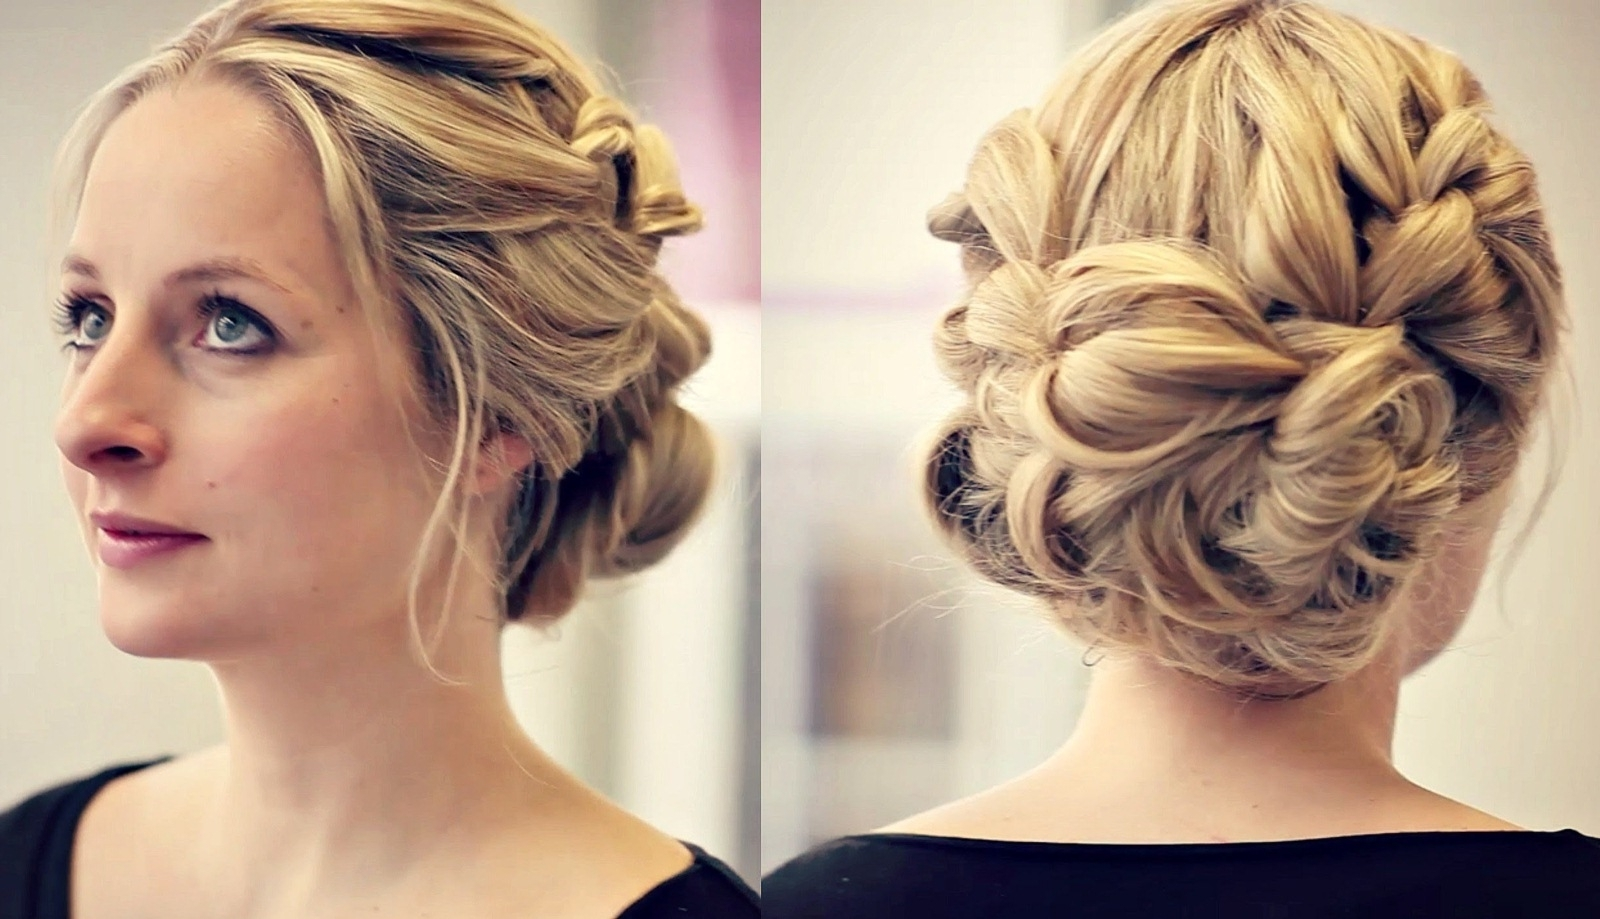 Updo Hairstyles For Weddings Mother Of The Bride – Hairstyle For In Updo Hairstyles For Mother Of The Bride (View 2 of 15)